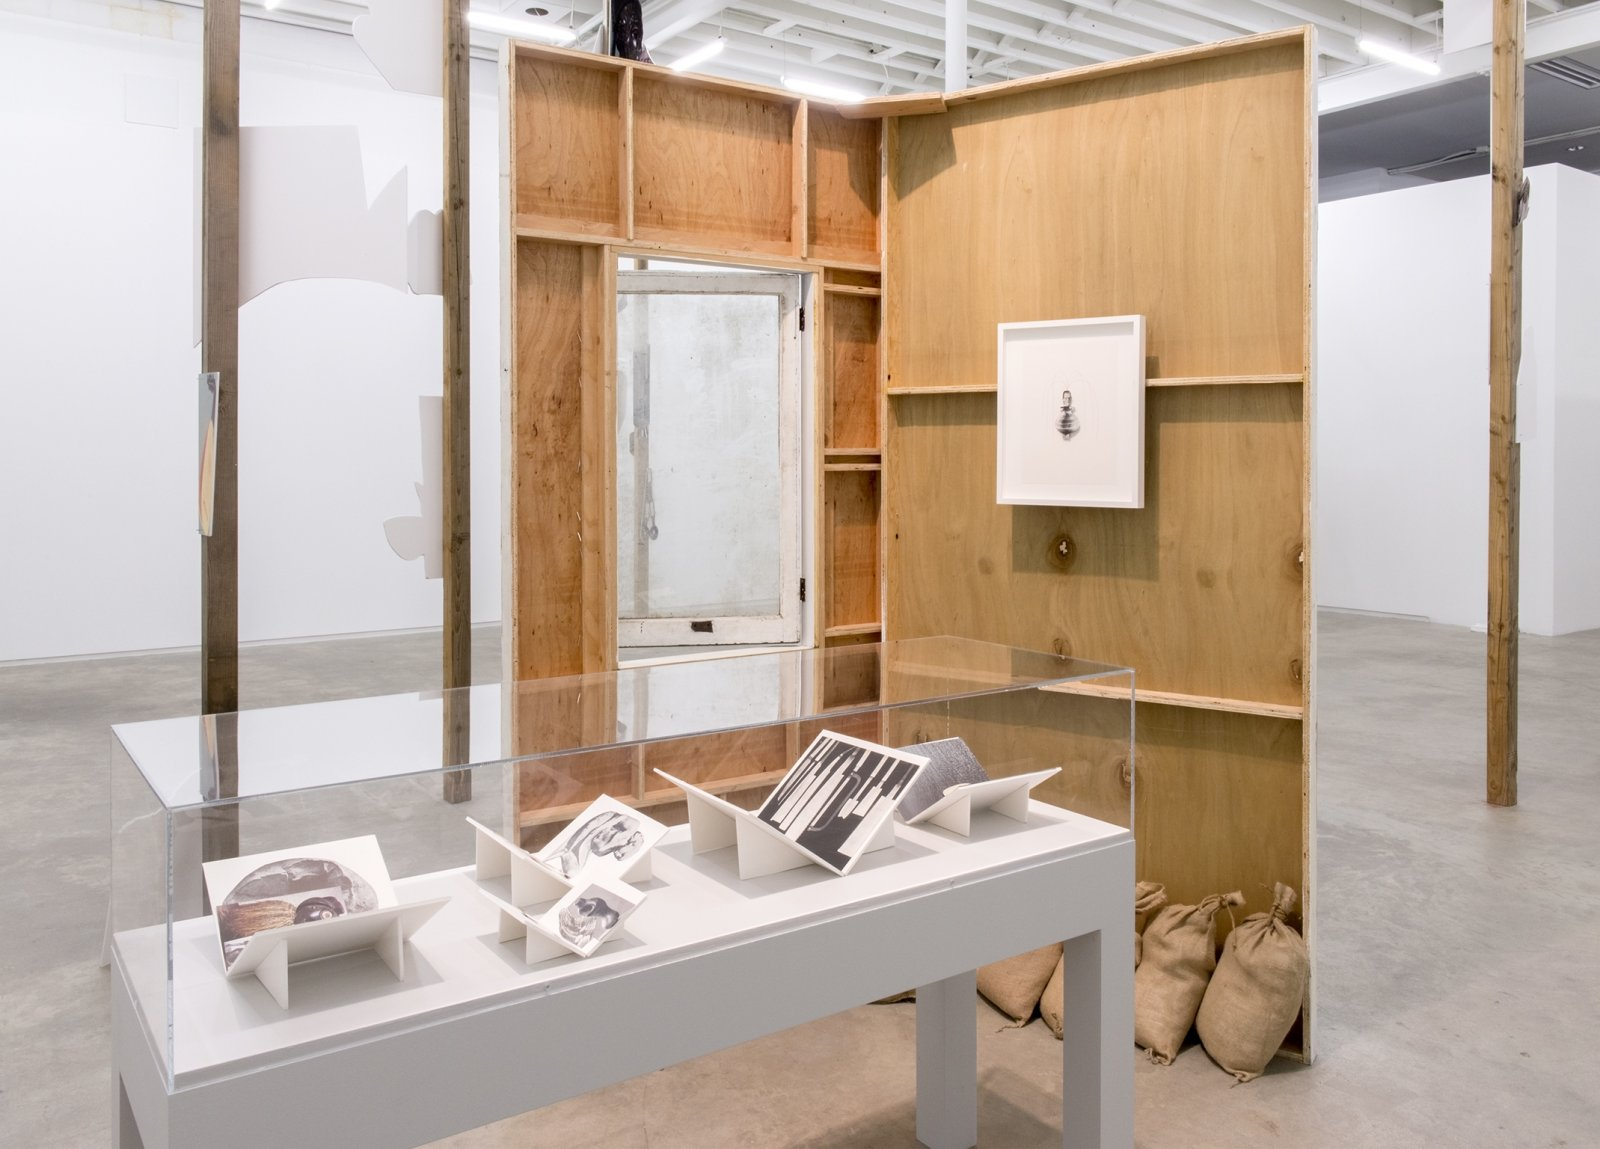 Geoffrey Farmer,Workbooks with When I got fired from that Beckett Play (Fountain)(detail),2014, vitrine with 5 cut-outs collaged on foamcore, 2 wooden wall façades, paint, window, sandbags, framed cut-outs and ink mounted on paper, dimensions variable